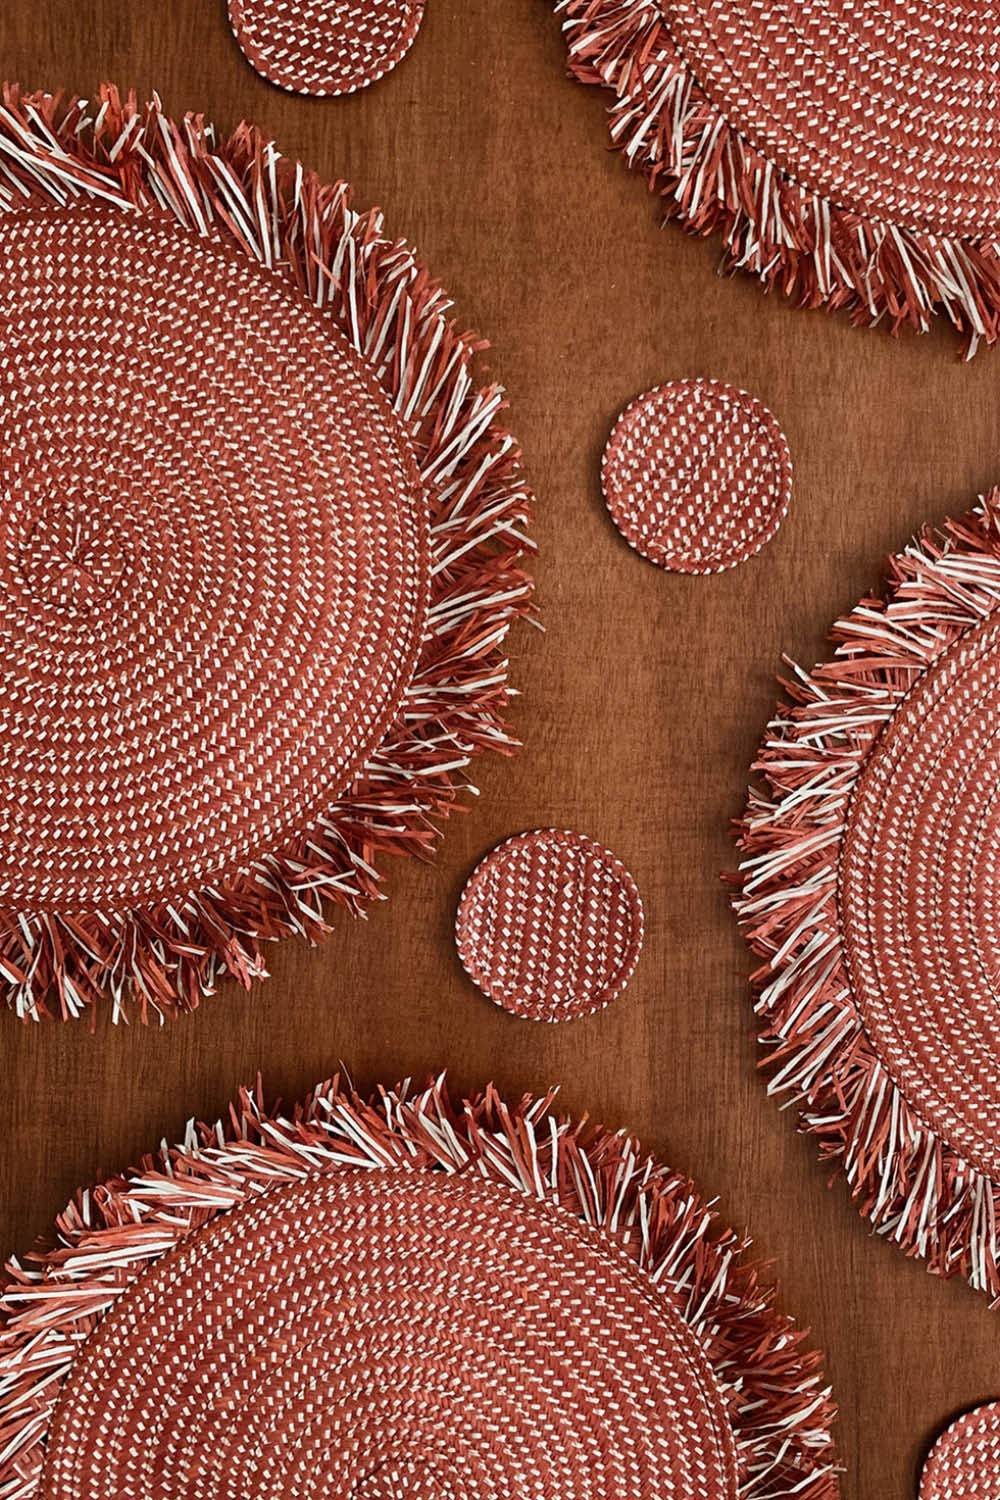 Zenu Place Mat and Coaster Set of 4 in Red/Natural